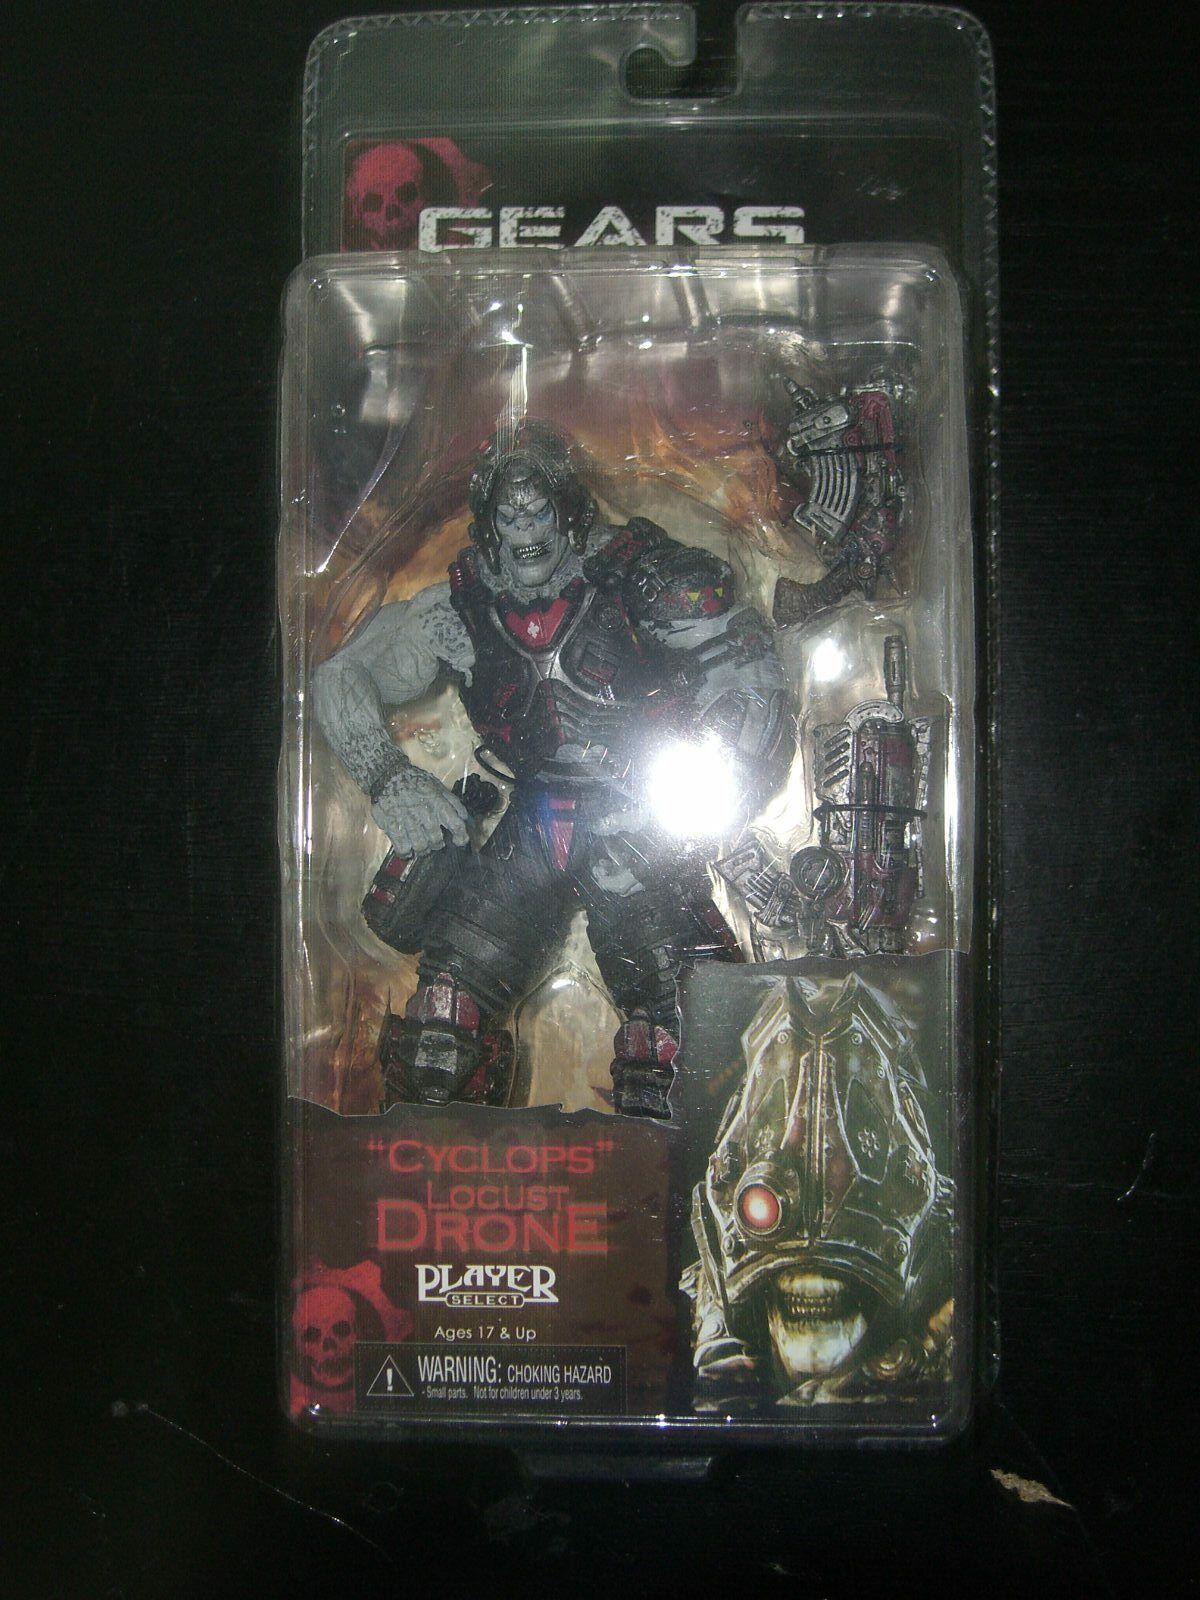 Gears of War 2 CYCLOPS LOCUST DRONE figure 7  NECA player select MIB